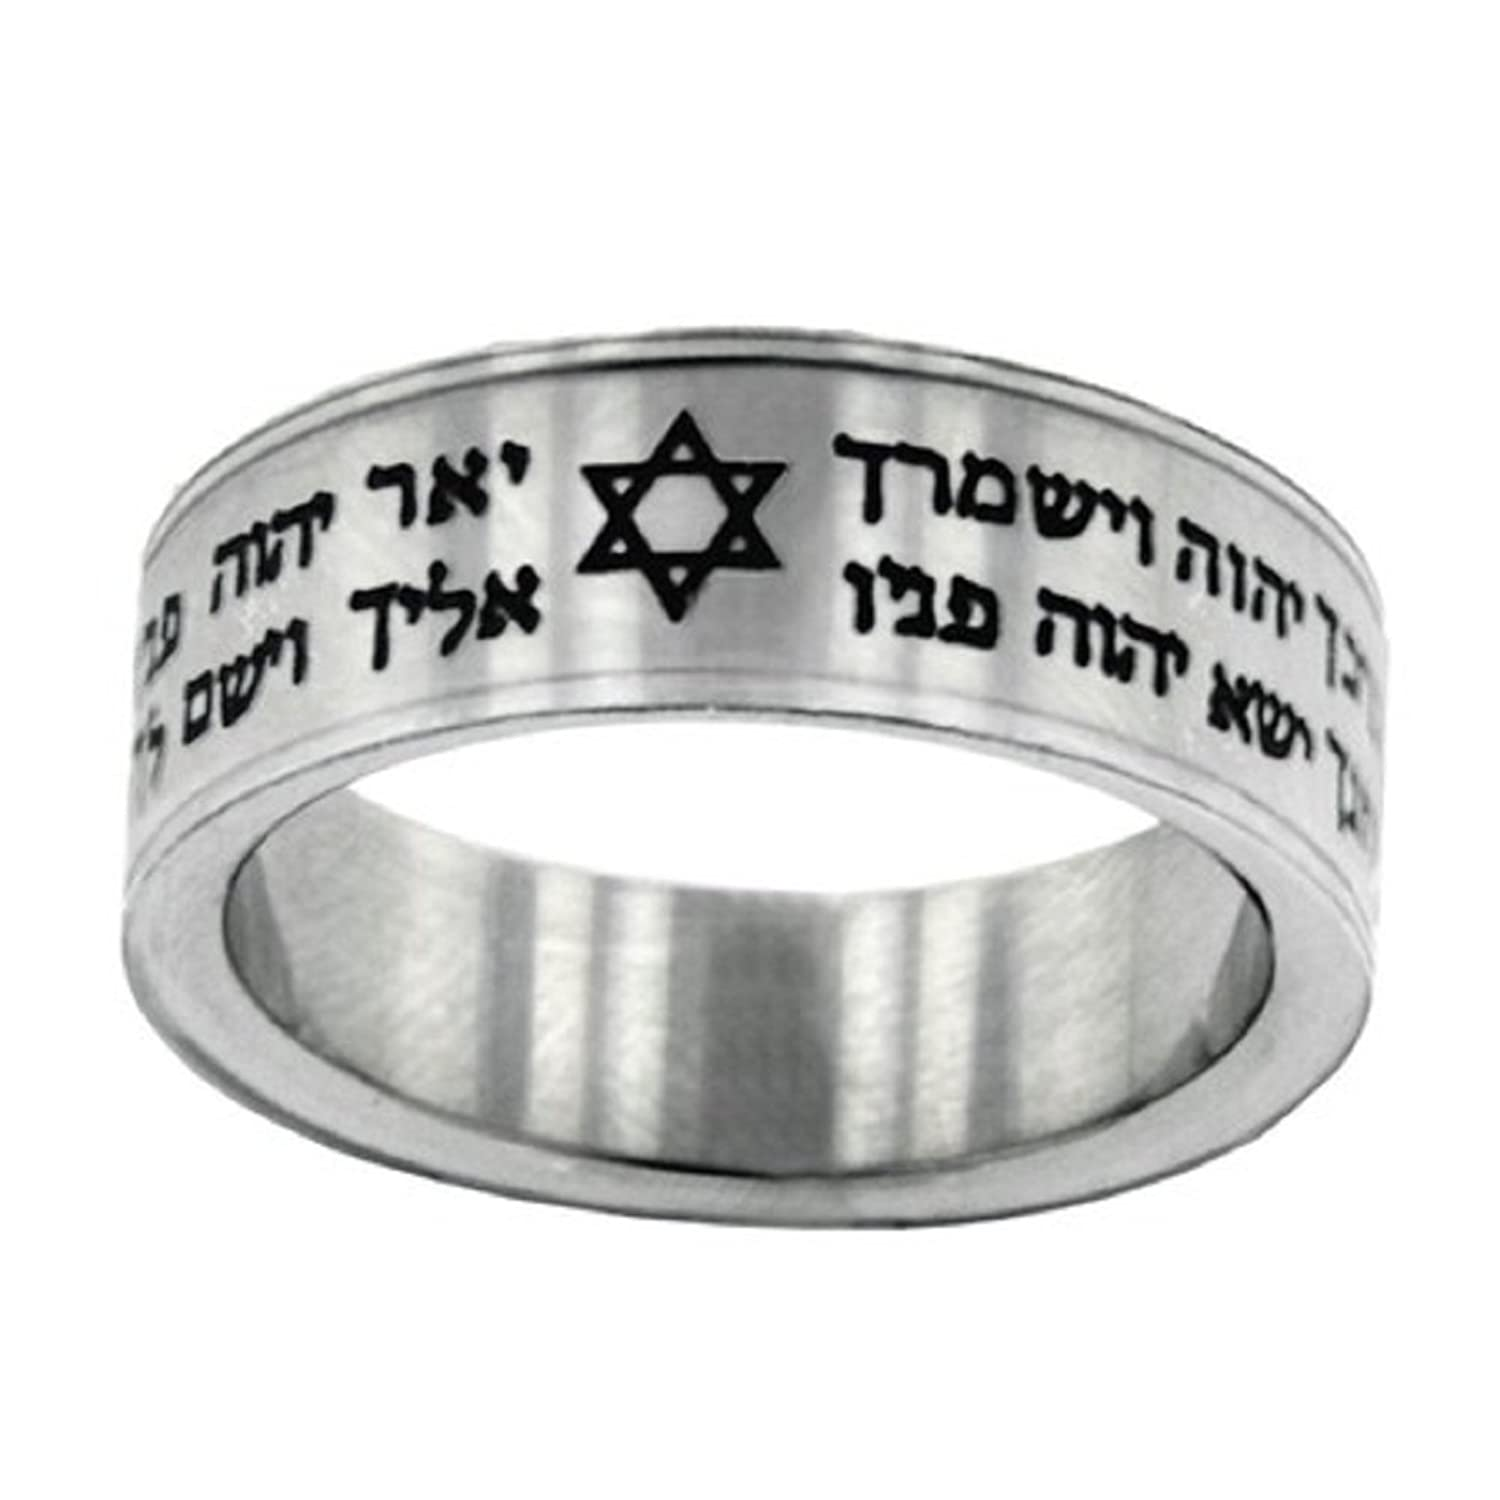 Amazon.com: Star Of David Ring in Stainless Steel: Jewelry